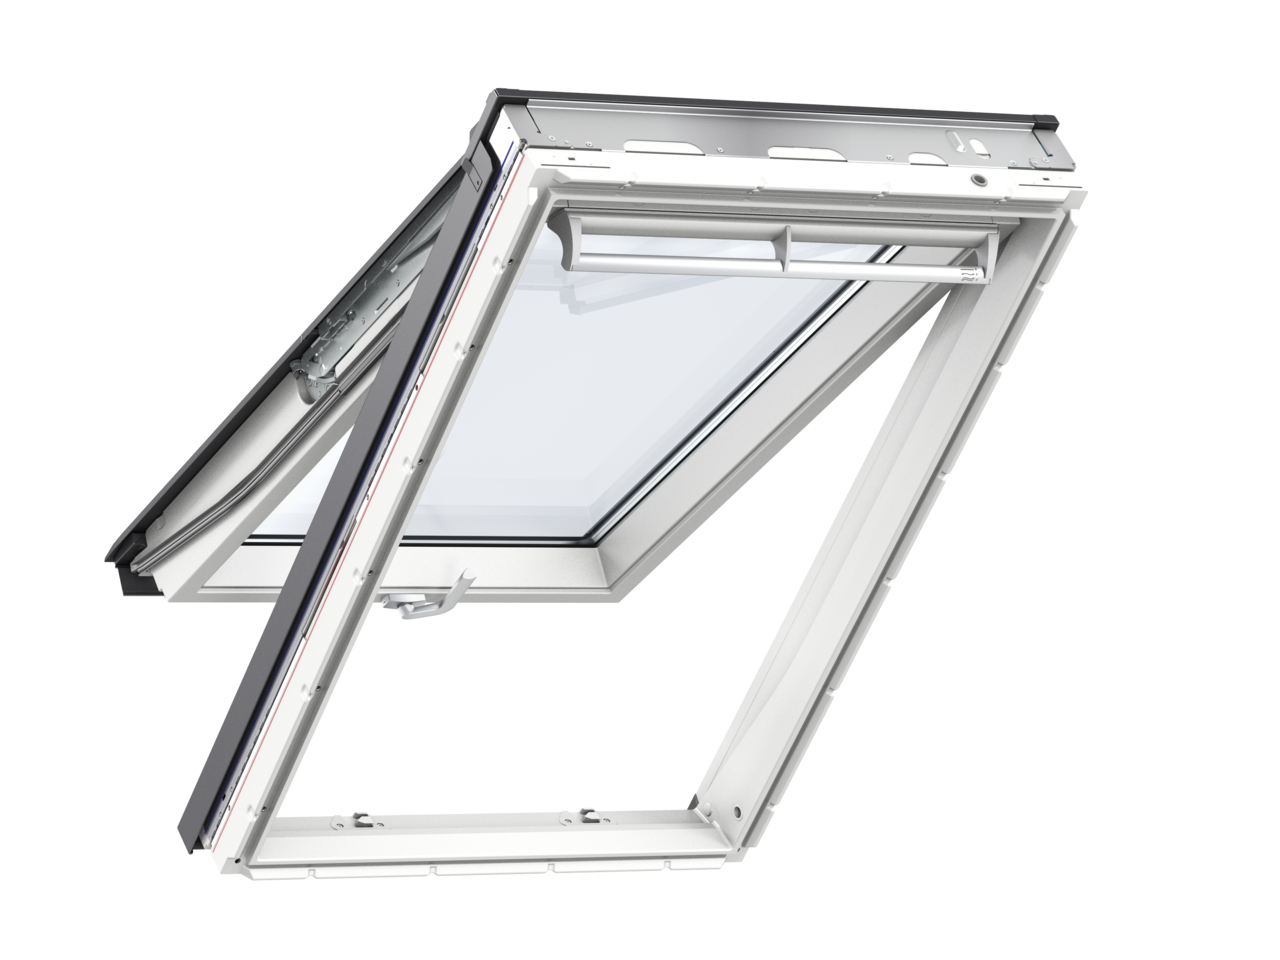 Velux GPU SK06 1140 x 1180mm Top Hung 34Pane Roof Window - White Polyurethane